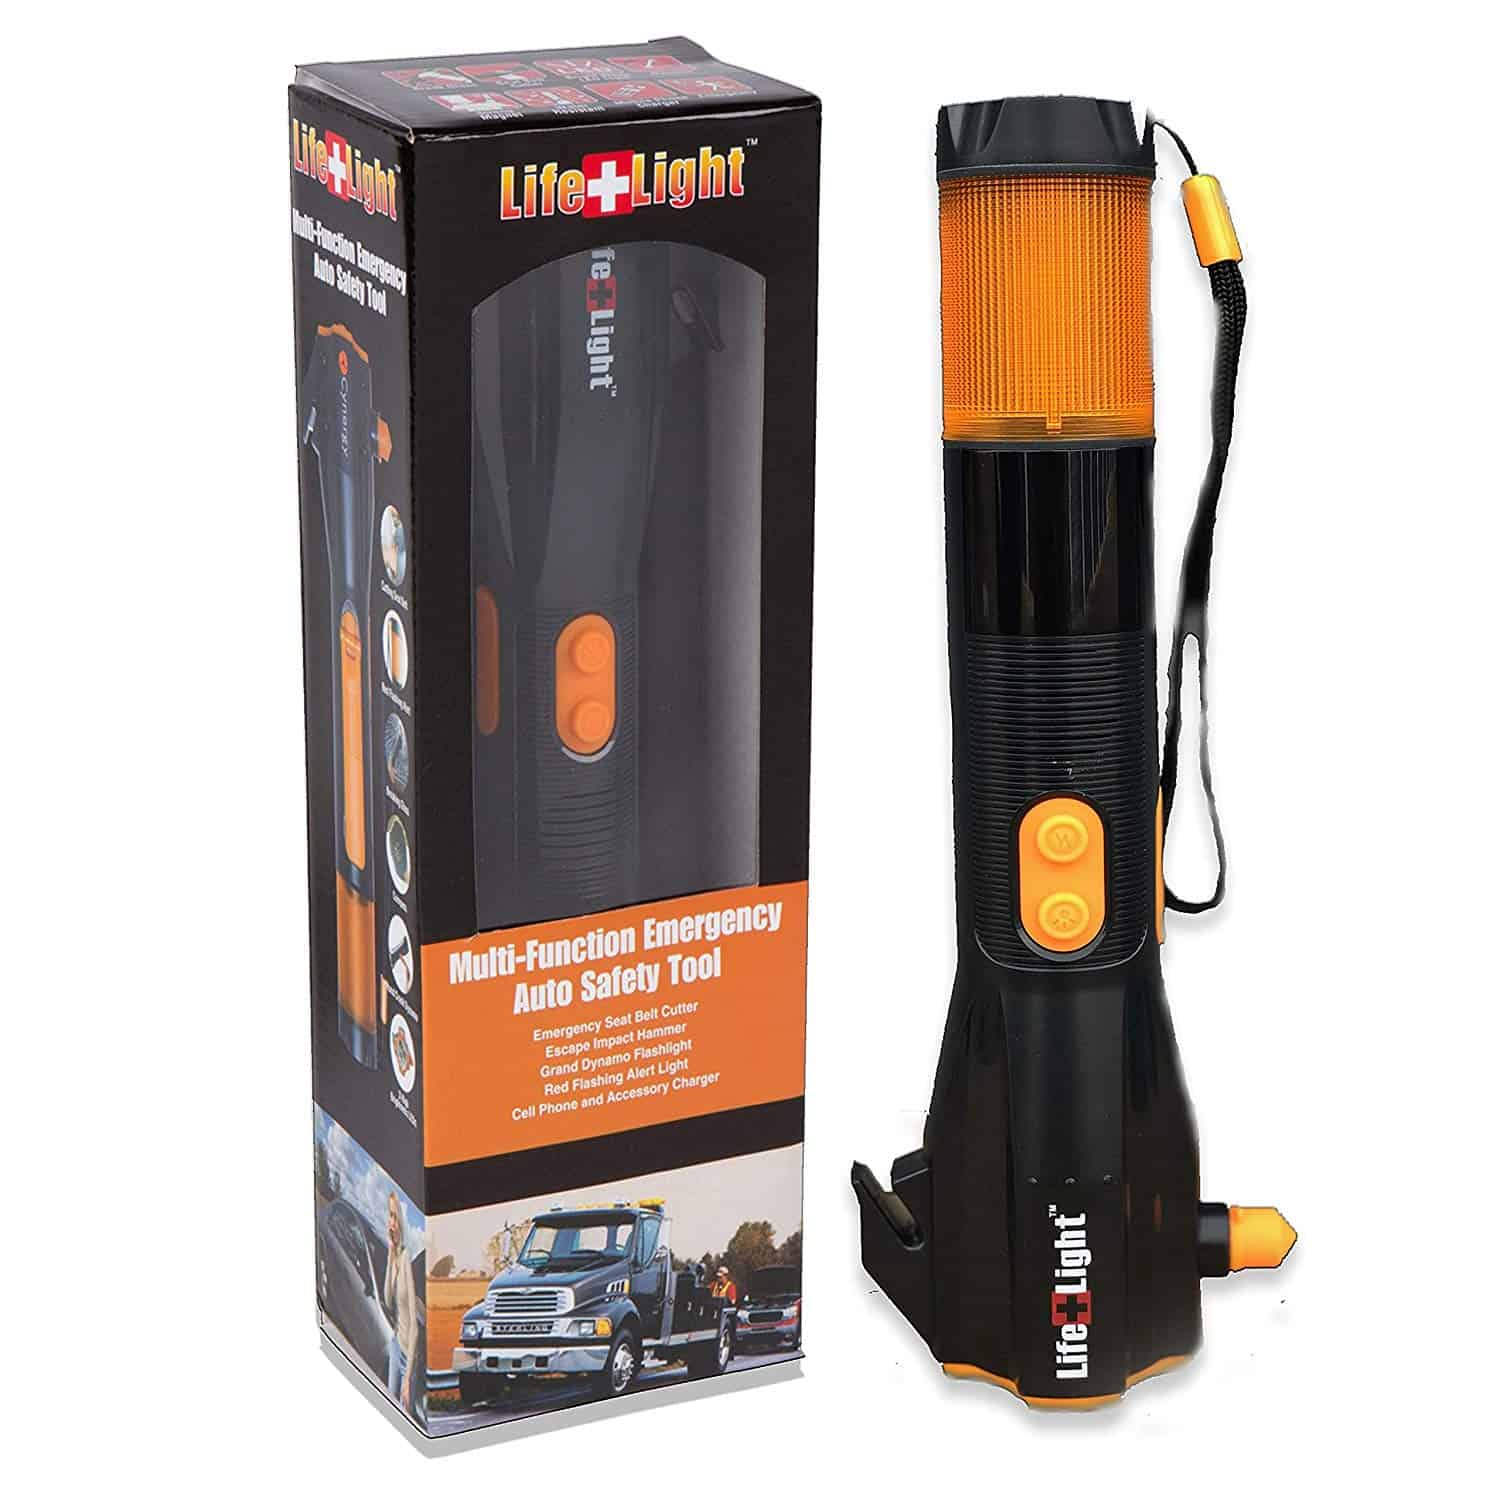 LifeLight LED Flashlight